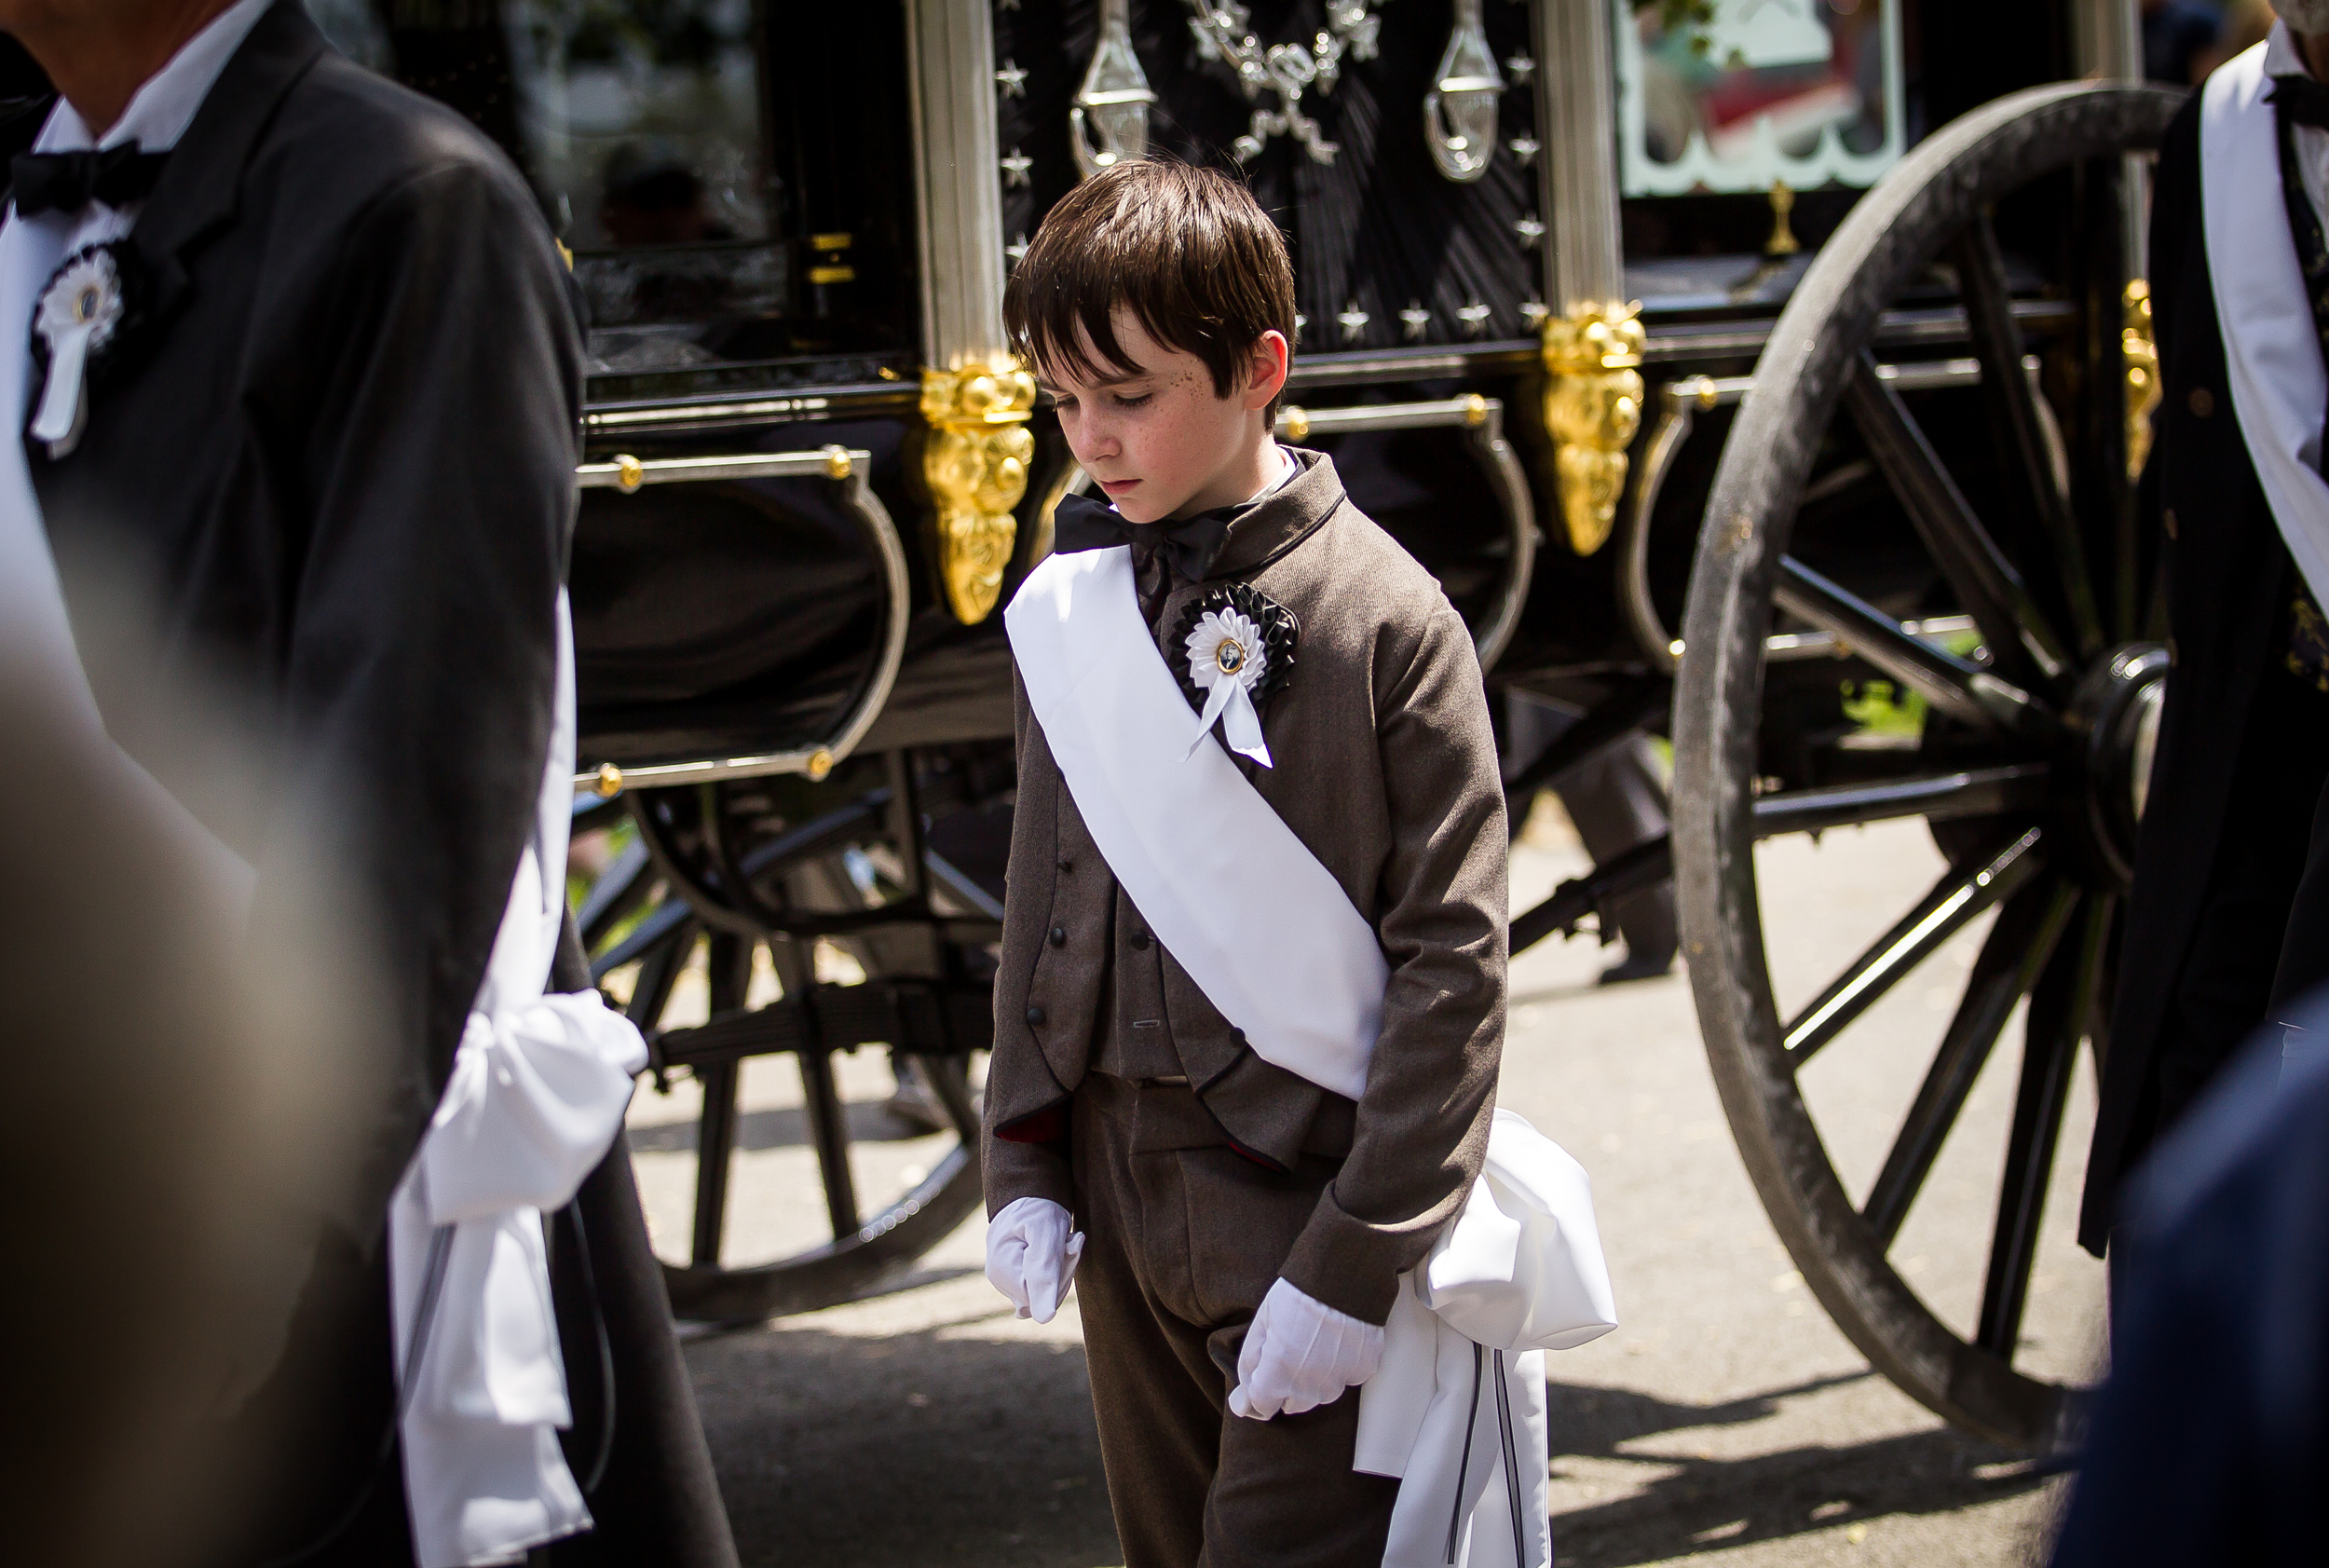 William Polston, 11, of Minneapolis, Minn., serves as a pallbearer walking next the recreation of Lincoln's hearse in the funeral procession during the 2015 Lincoln Funeral Re-enactment, Sunday, May 3, 2015, in Springfield, Ill. Polston is a a descendant of Stephen Trigg Logan, one of the original pallbearers that walked along side Lincoln's hearse. Justin L. Fowler/The State Journal-Register